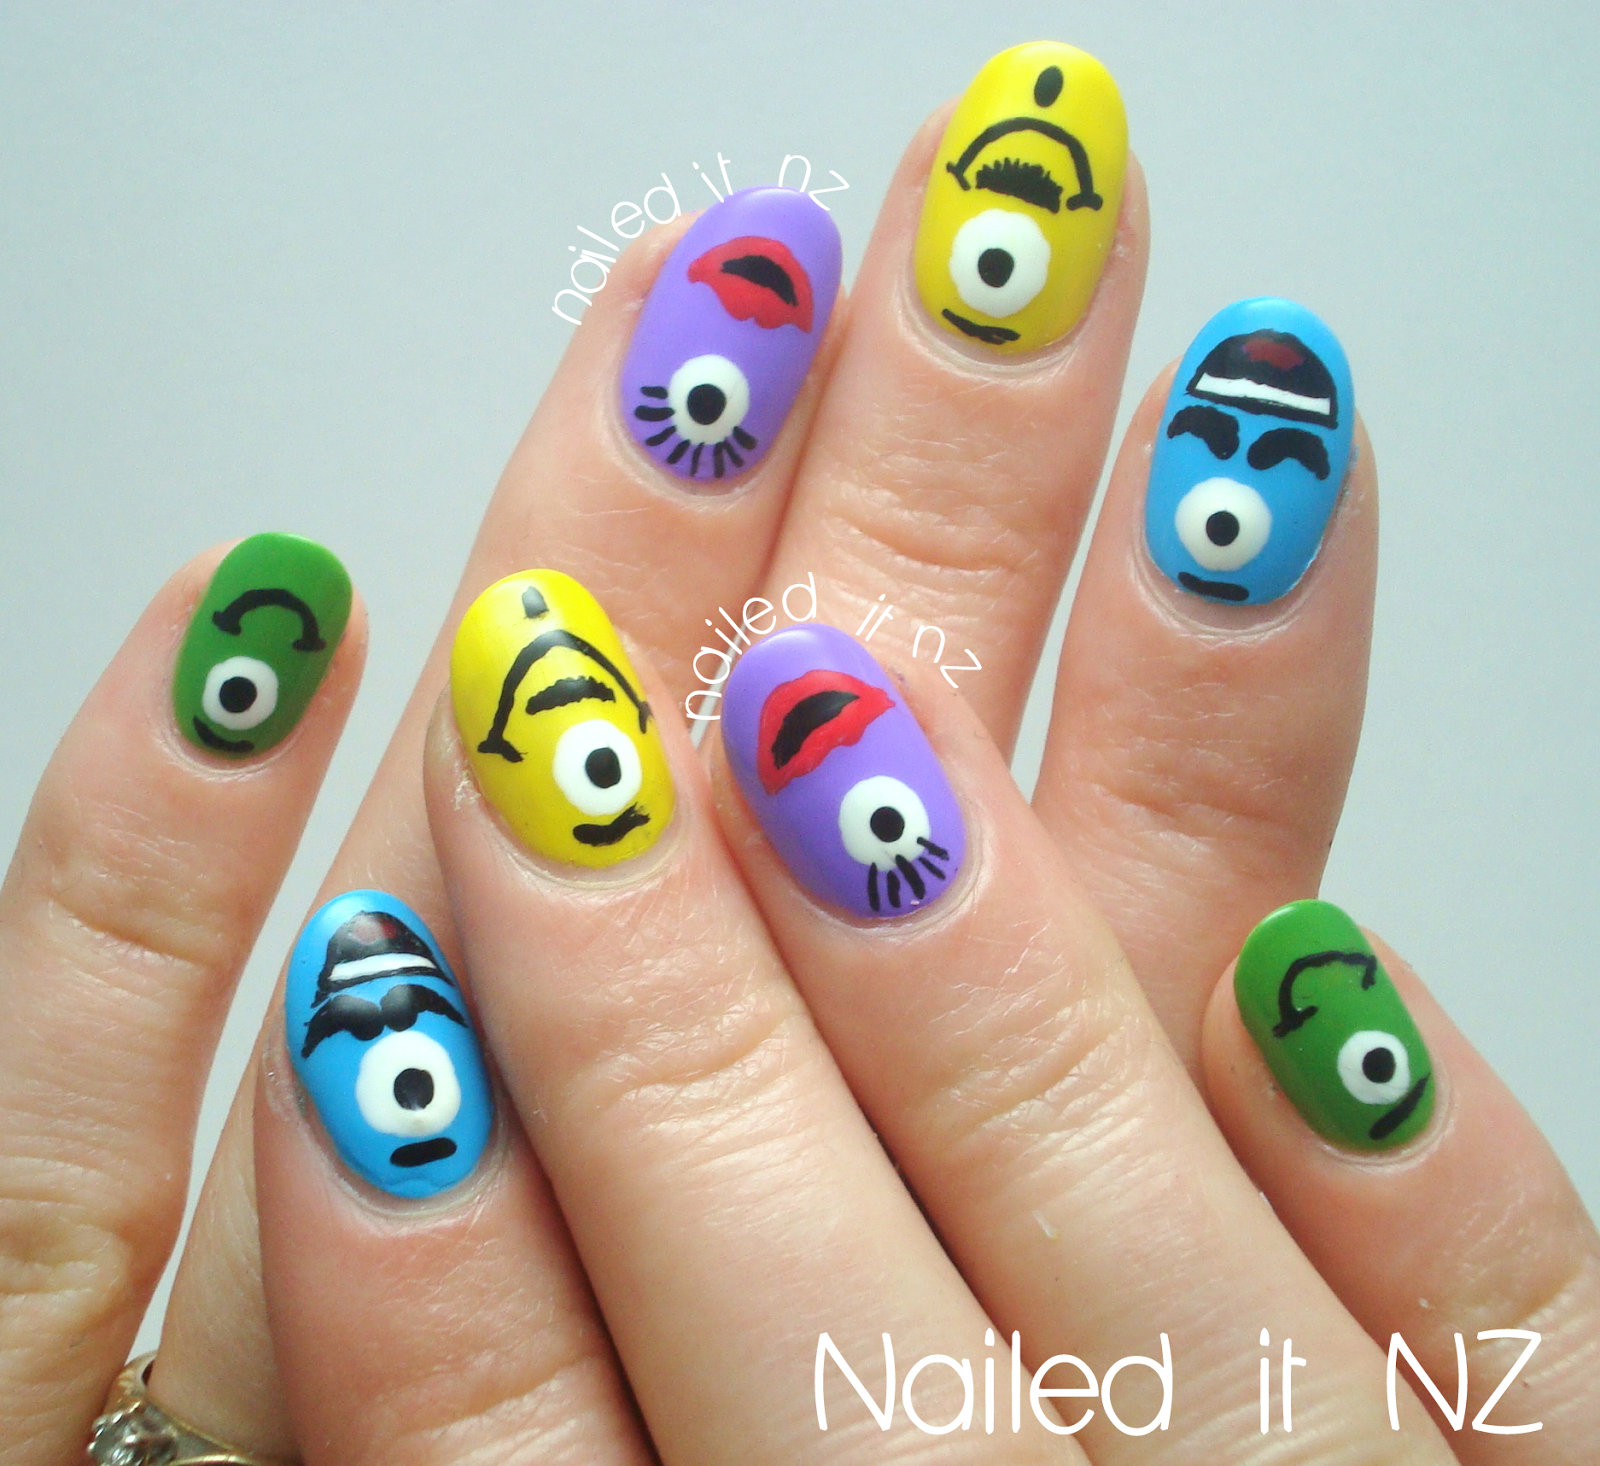 Nailed it nz little monsters nail art tutorial nail arts nailed it nz little monsters nail art tutorial diy solutioingenieria Image collections